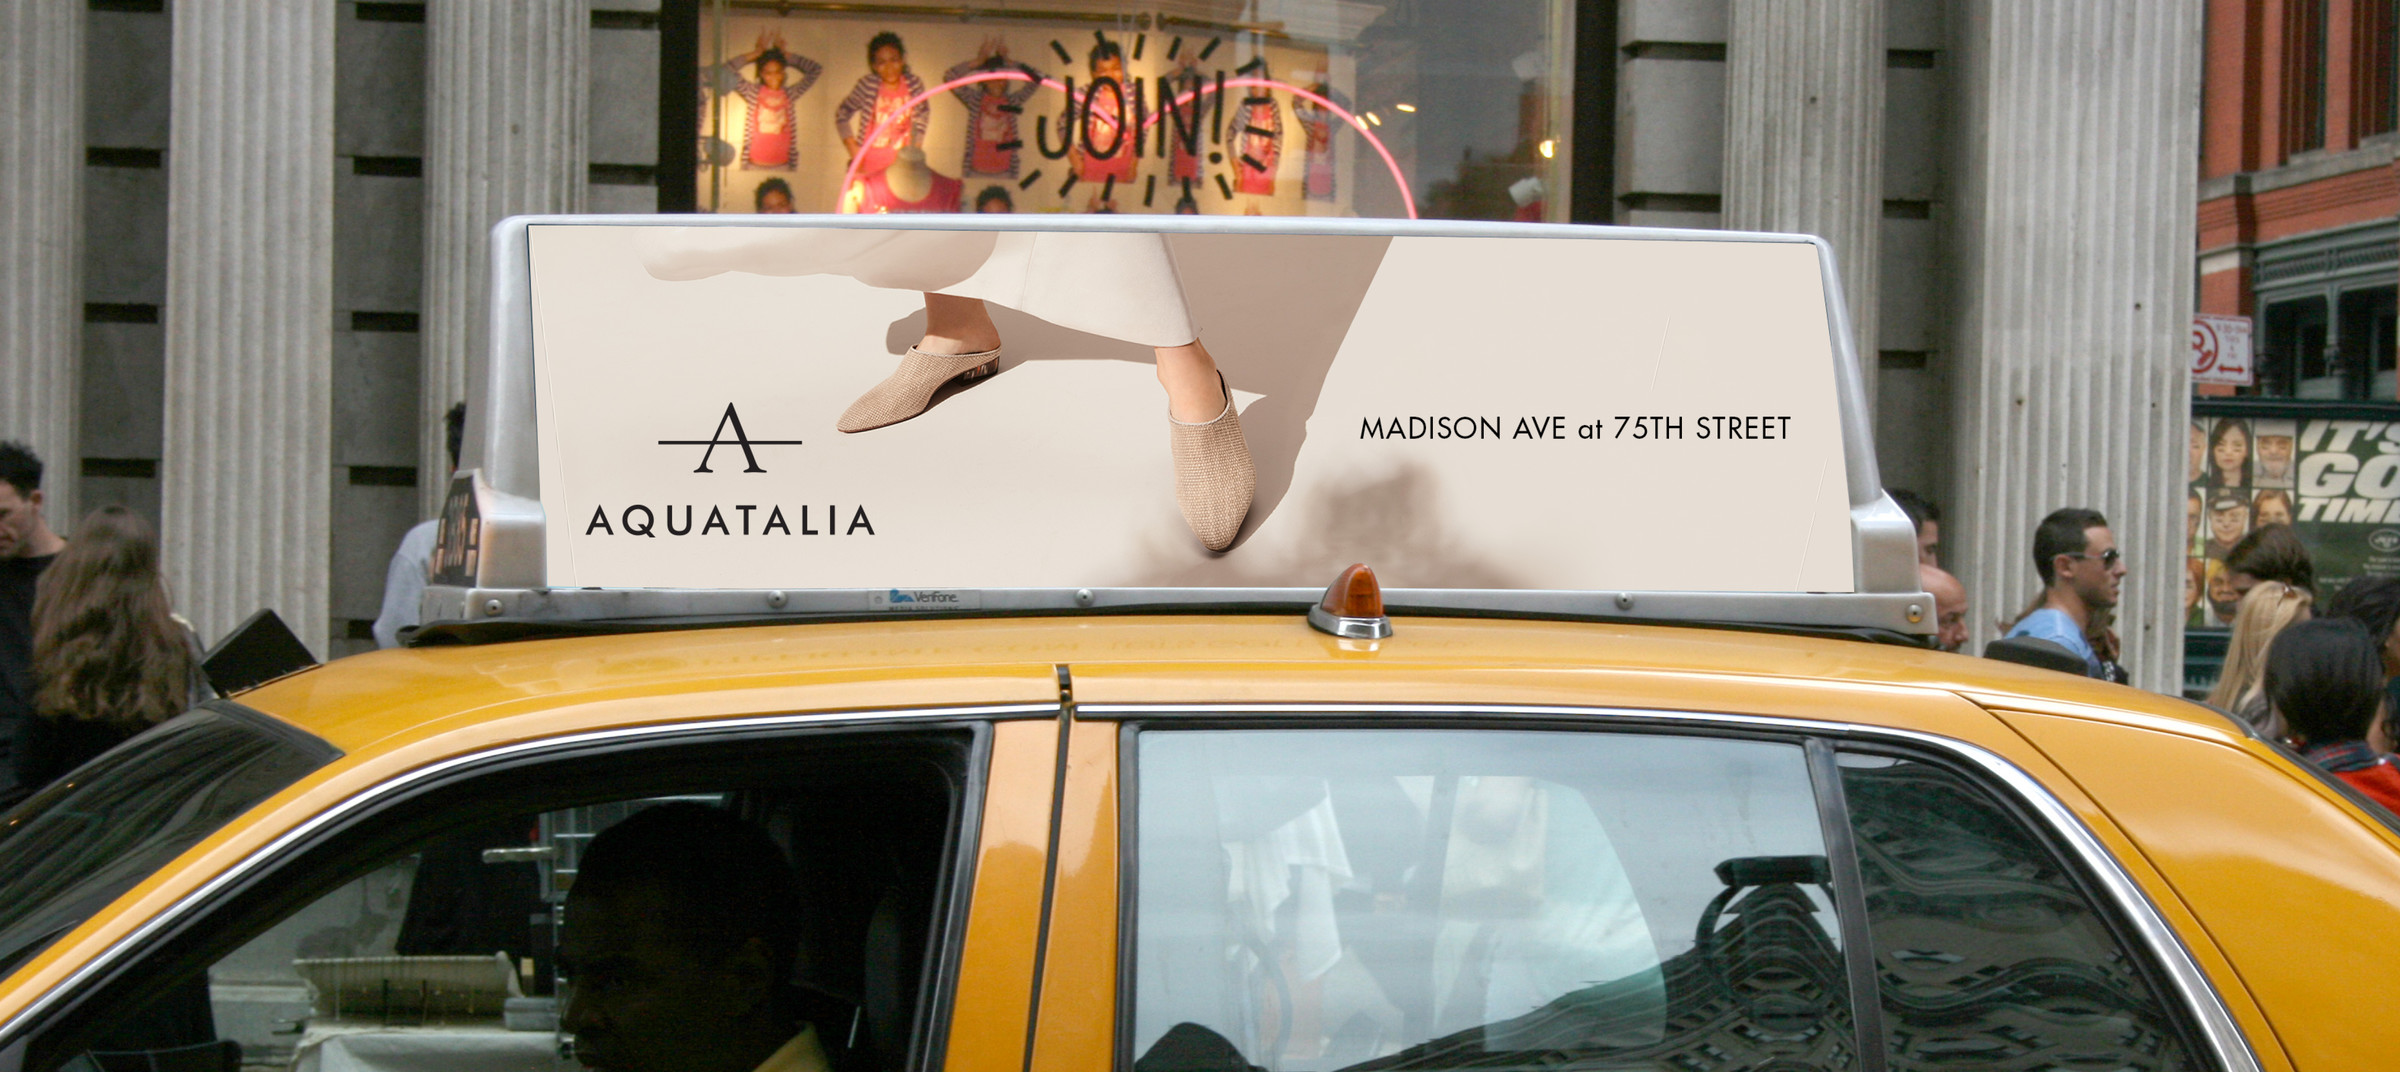 DTE placed Aquatalia's new re-launch campaign into the streets of New York and onto yellow cabs